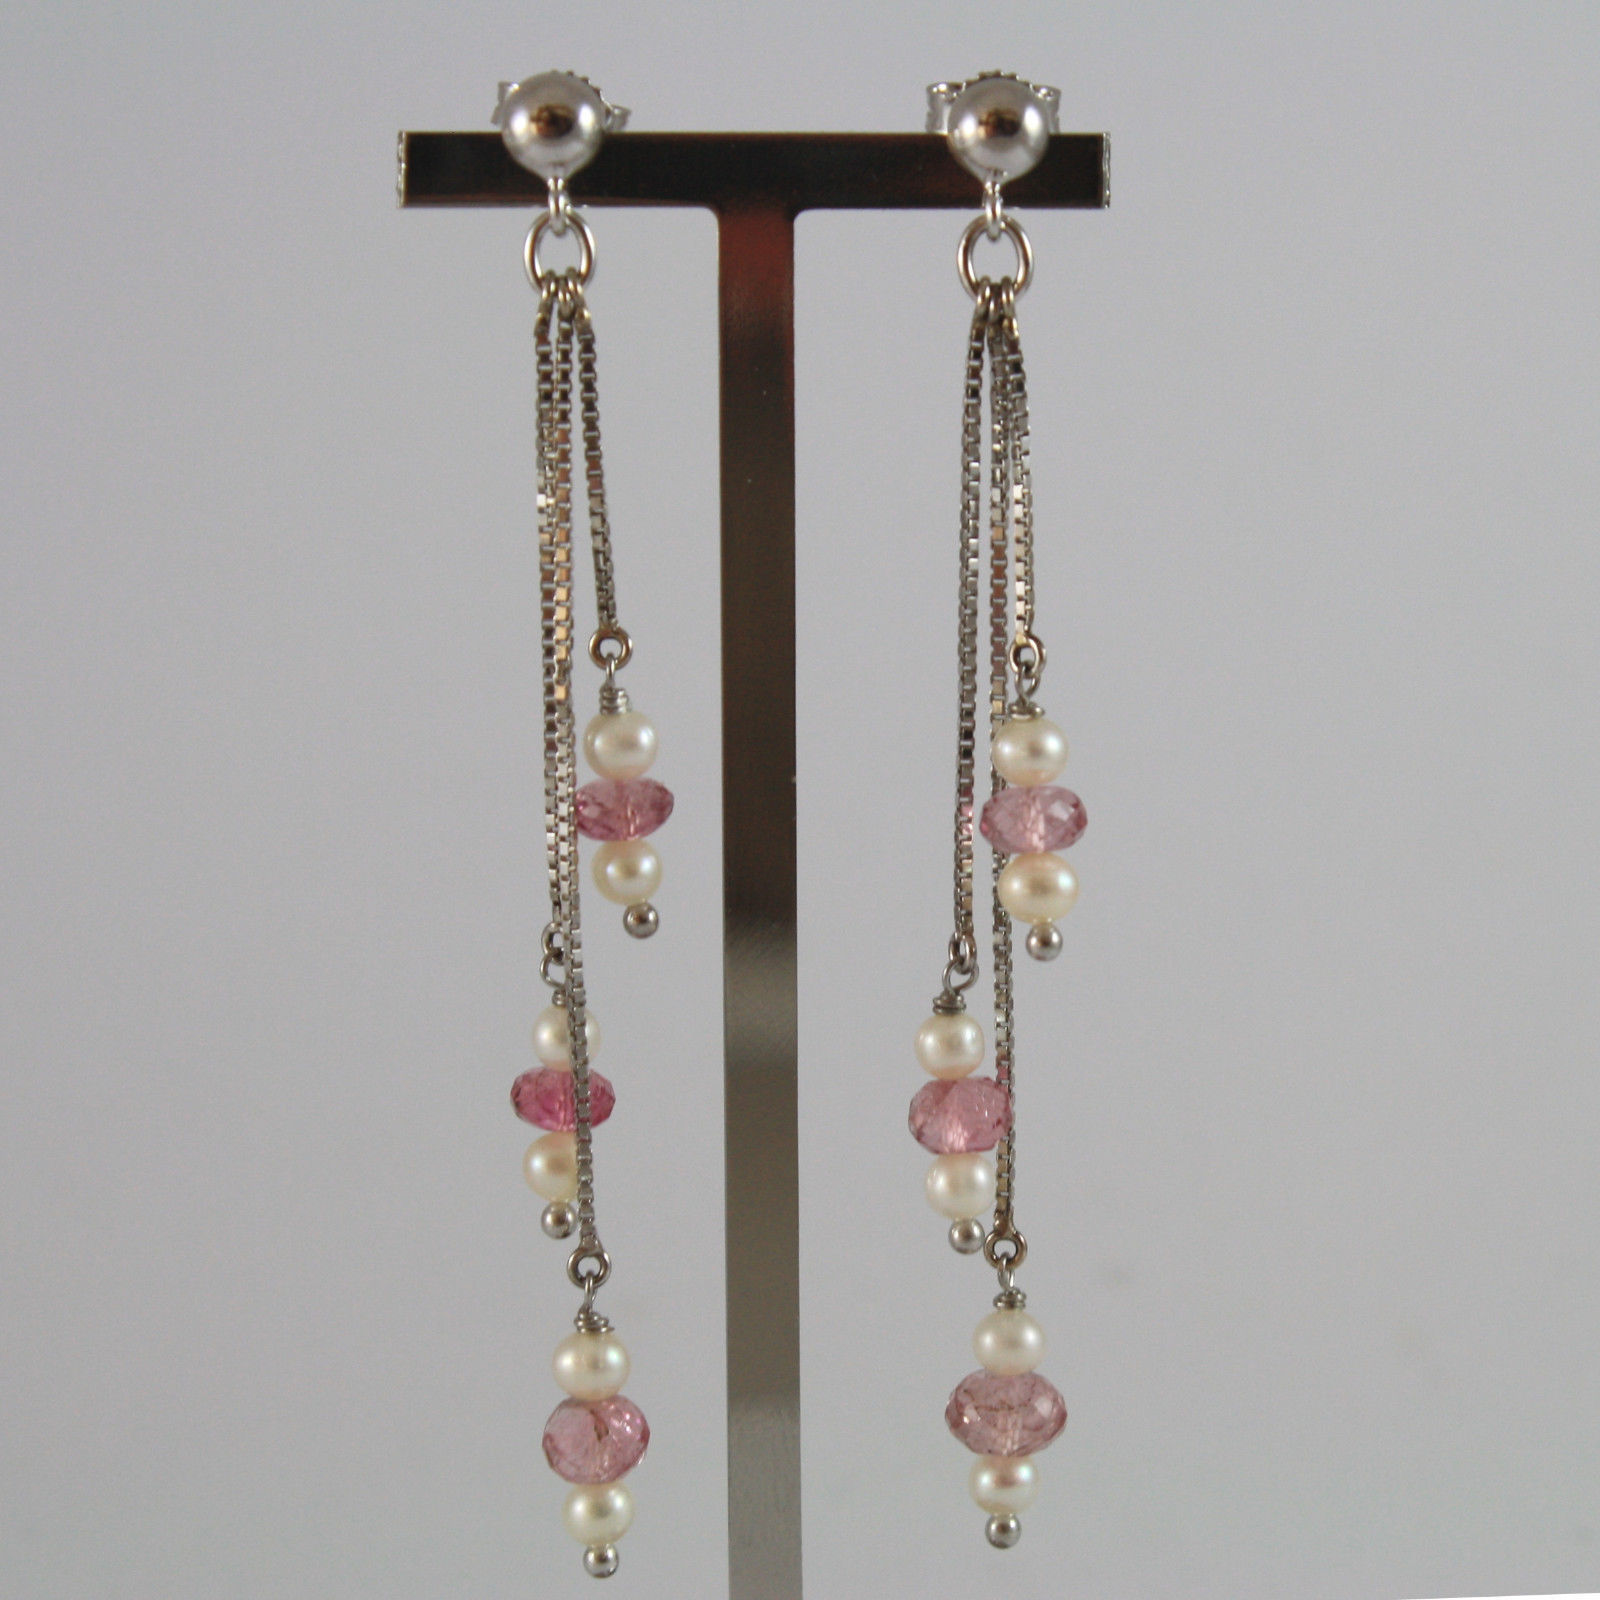 SOLID 18K WHITE GOLD PENDANT EARRINGS, WITH WHITE PEARLS AND PINK TOURMALINES